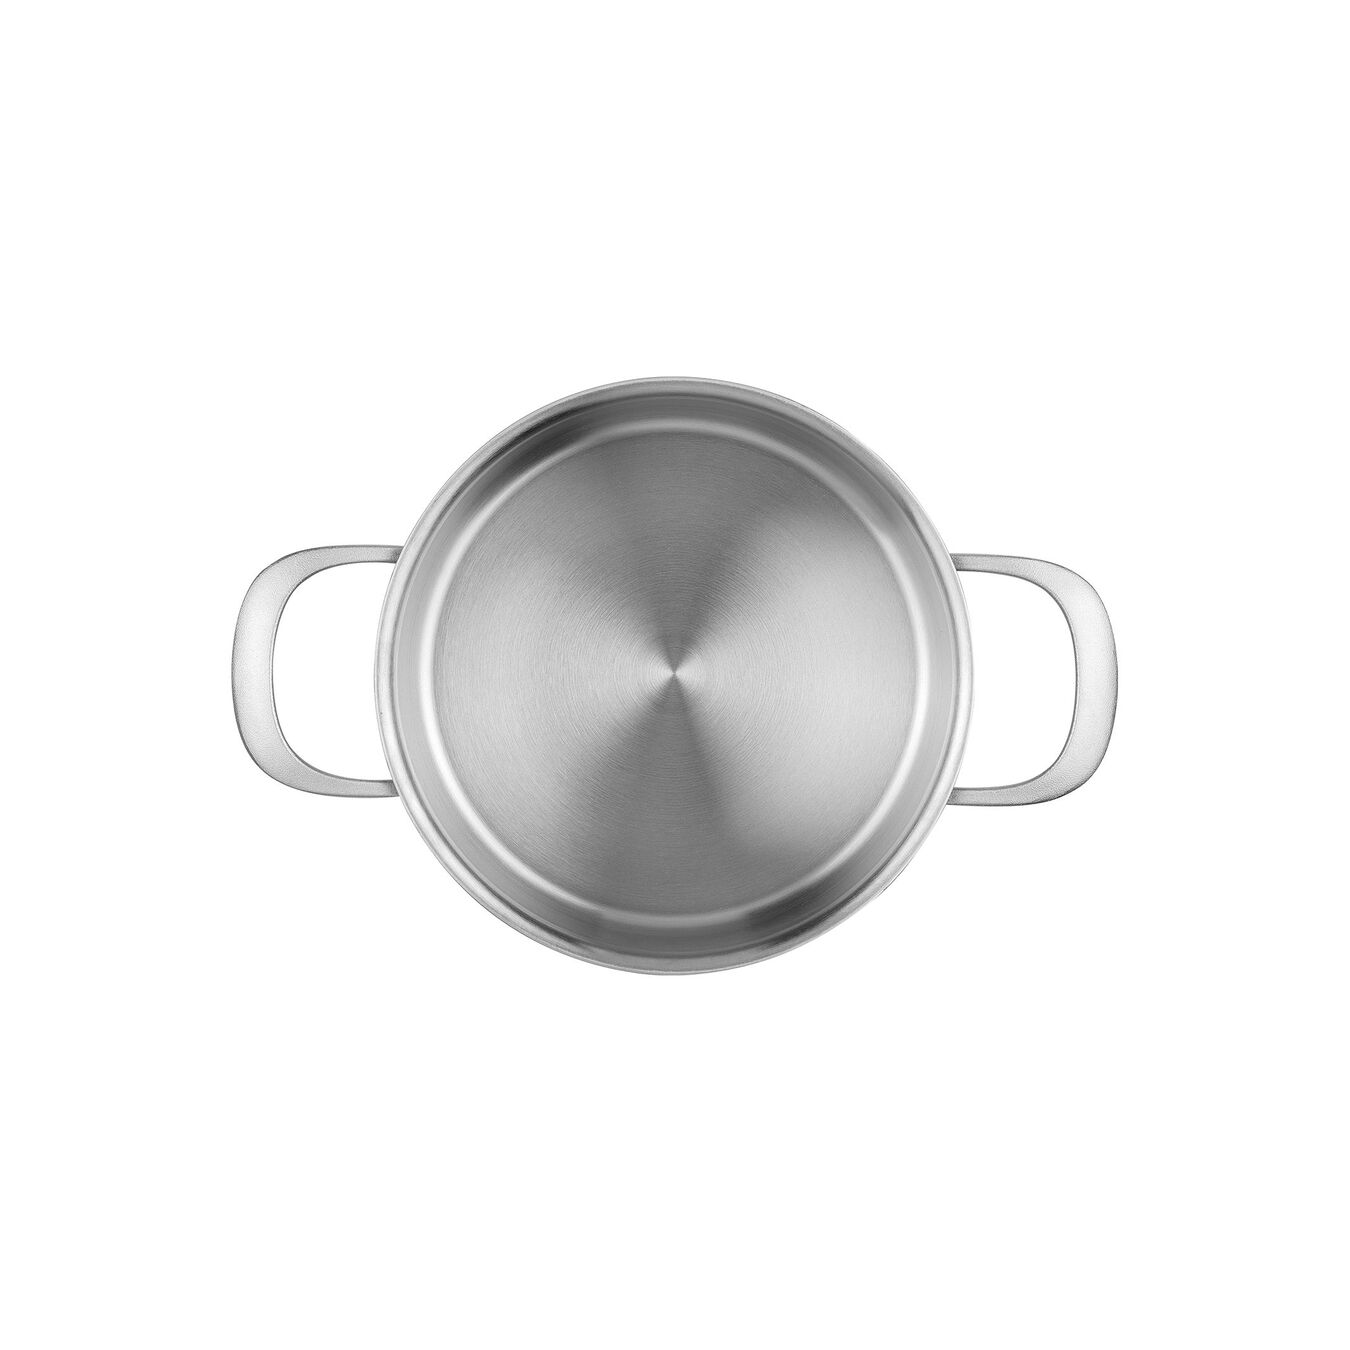 1,5 l 18/10 Stainless Steel Casserole,,large 4